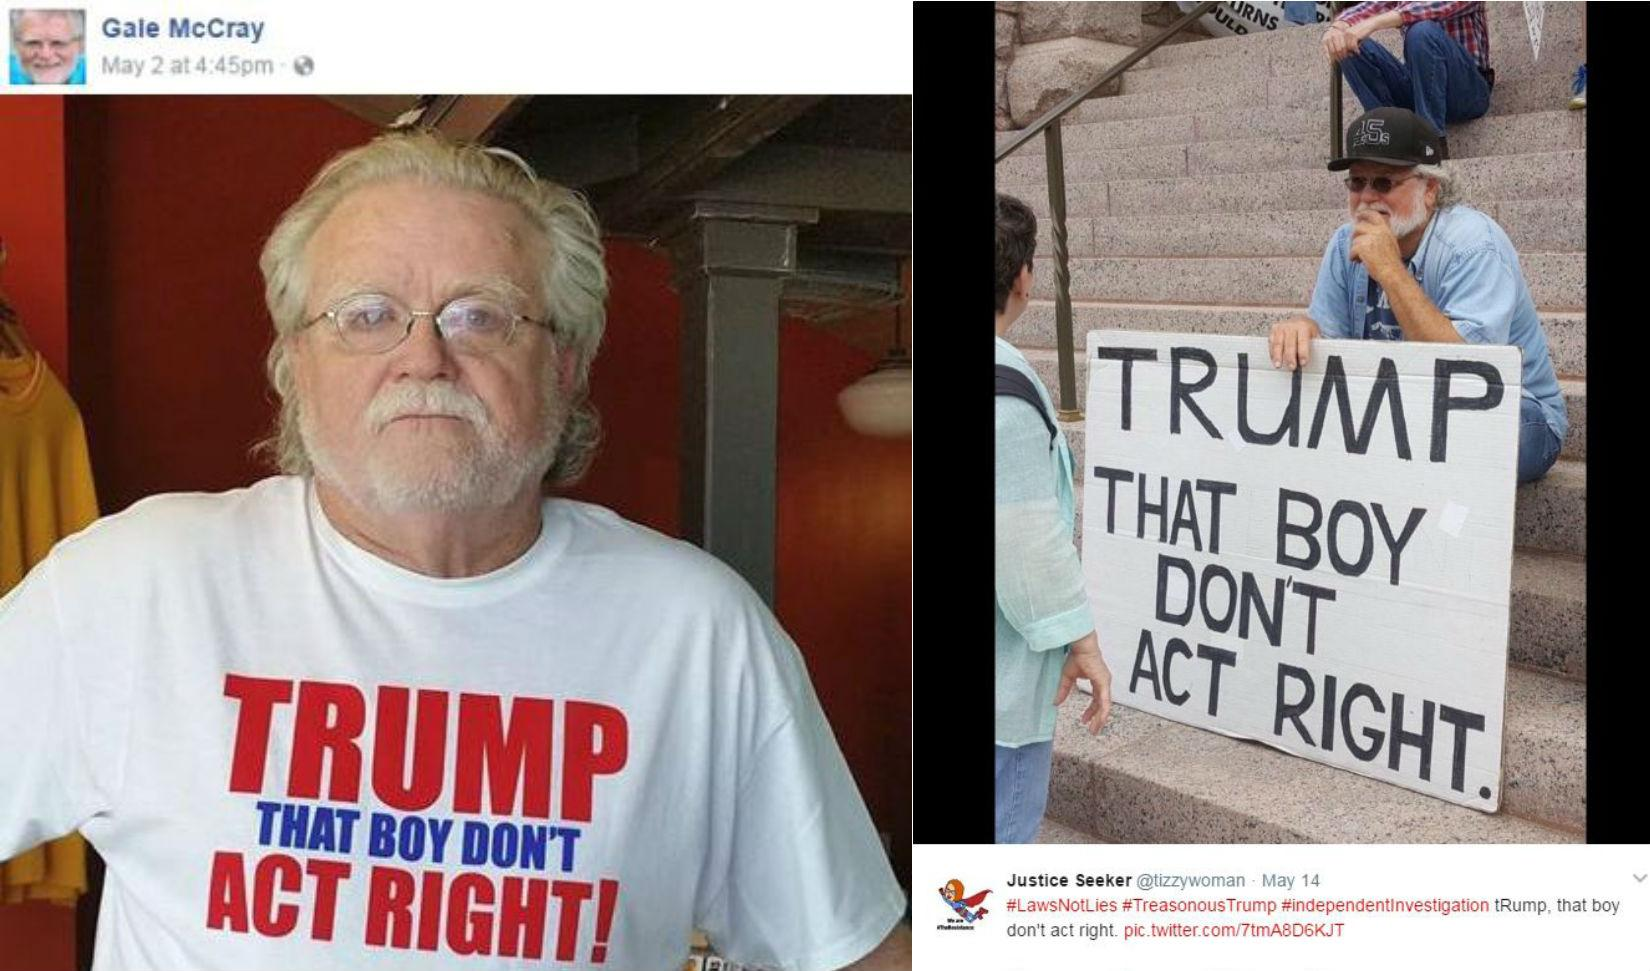 This man who protests Donald Trump every day has become a meme